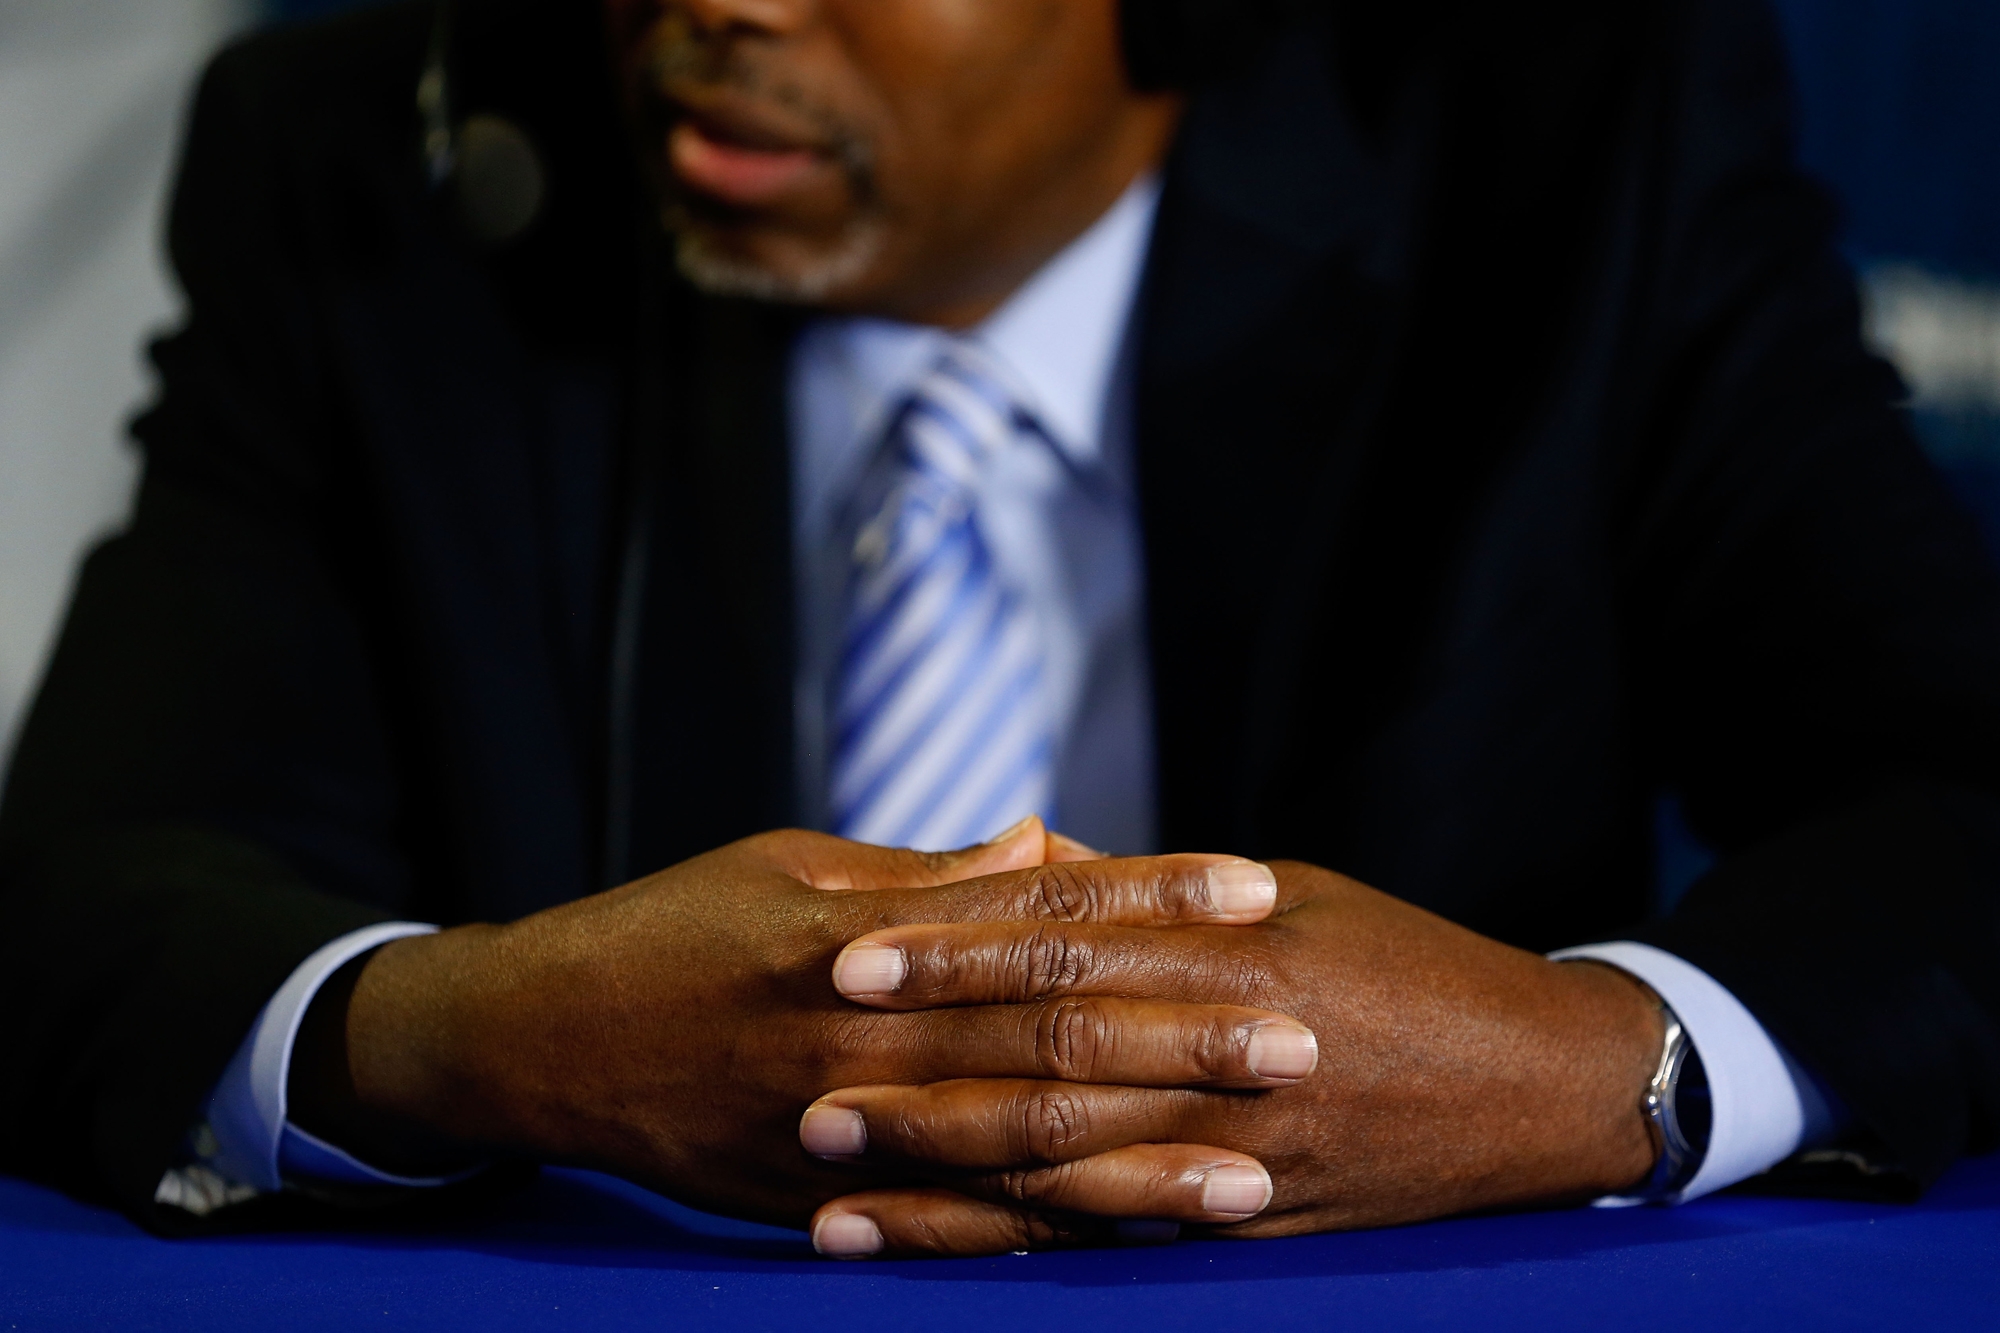 Dr. Ben Carson talks with Armstrong Williams during a taping of the Armstrong Williams Show on SiriusXM at Quicken Loans Arena on July 18, 2016 in Cleveland, Ohio.